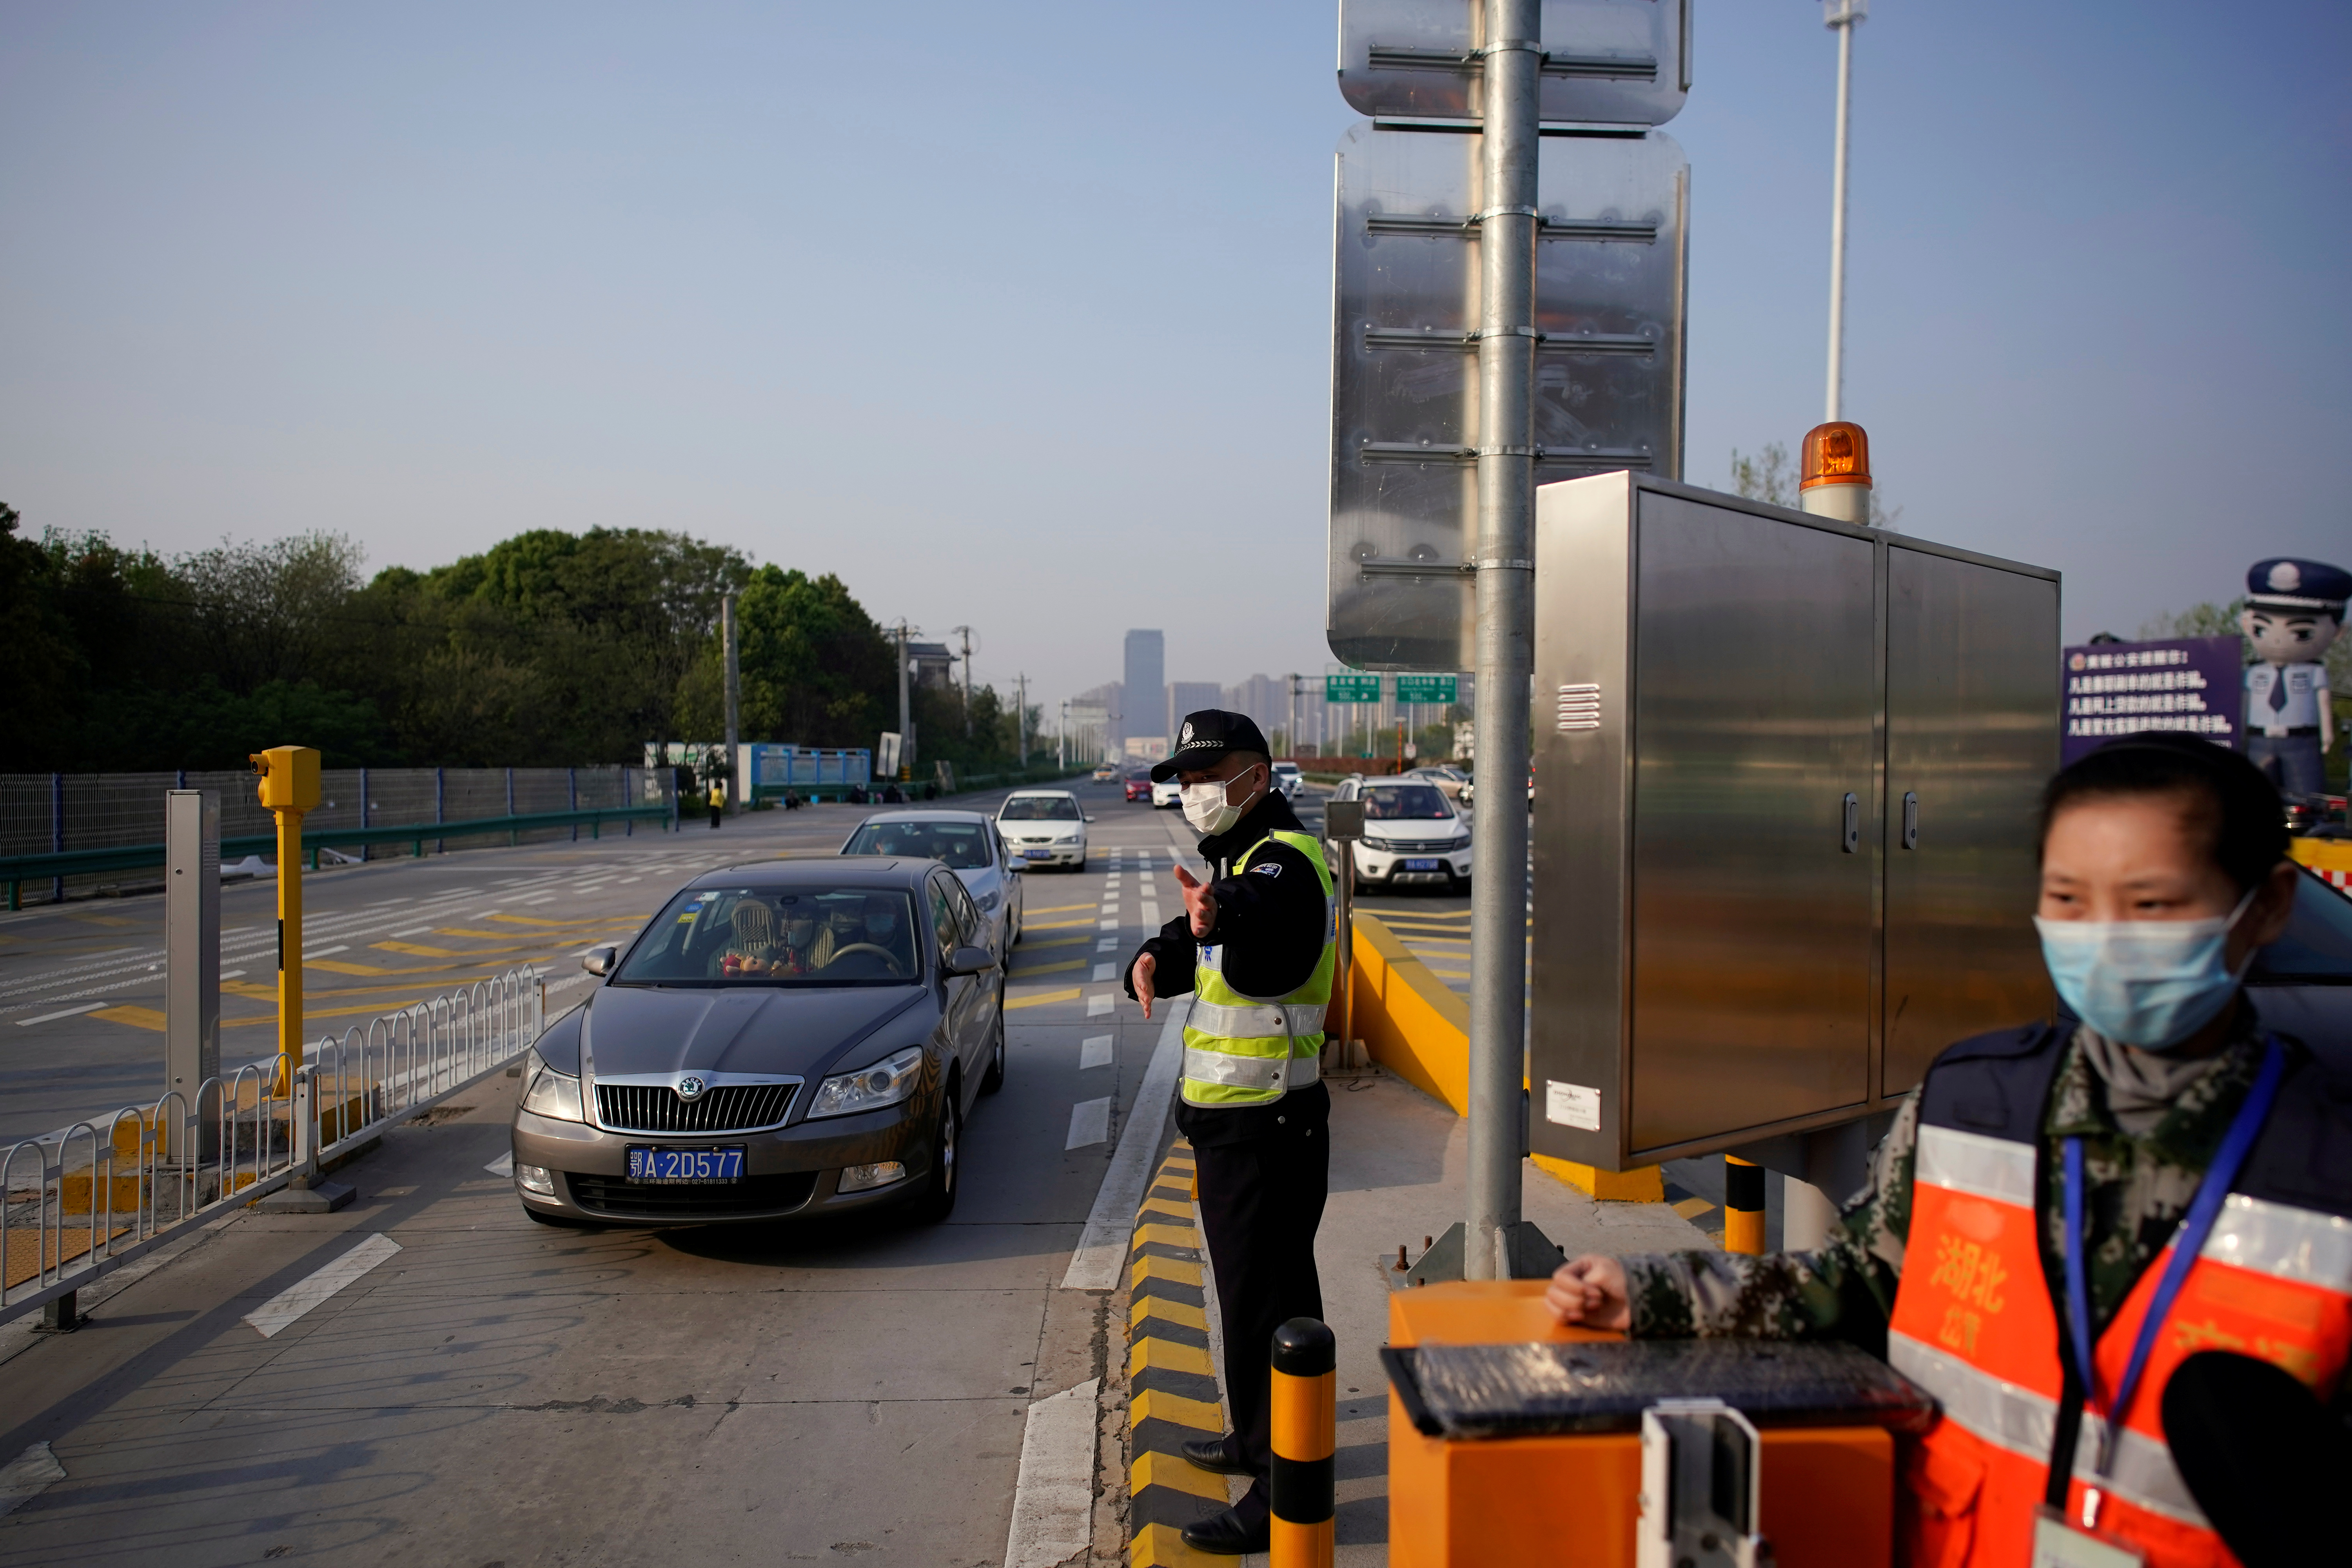 A police officer directs vehicles at a toll station of an expressway after travel restrictions to leave Wuhan, the capital of Hubei province and China's epicentre of the novel coronavirus disease (COVID-19) outbreak, were lifted, April 8, 2020. REUTERS/Aly Song